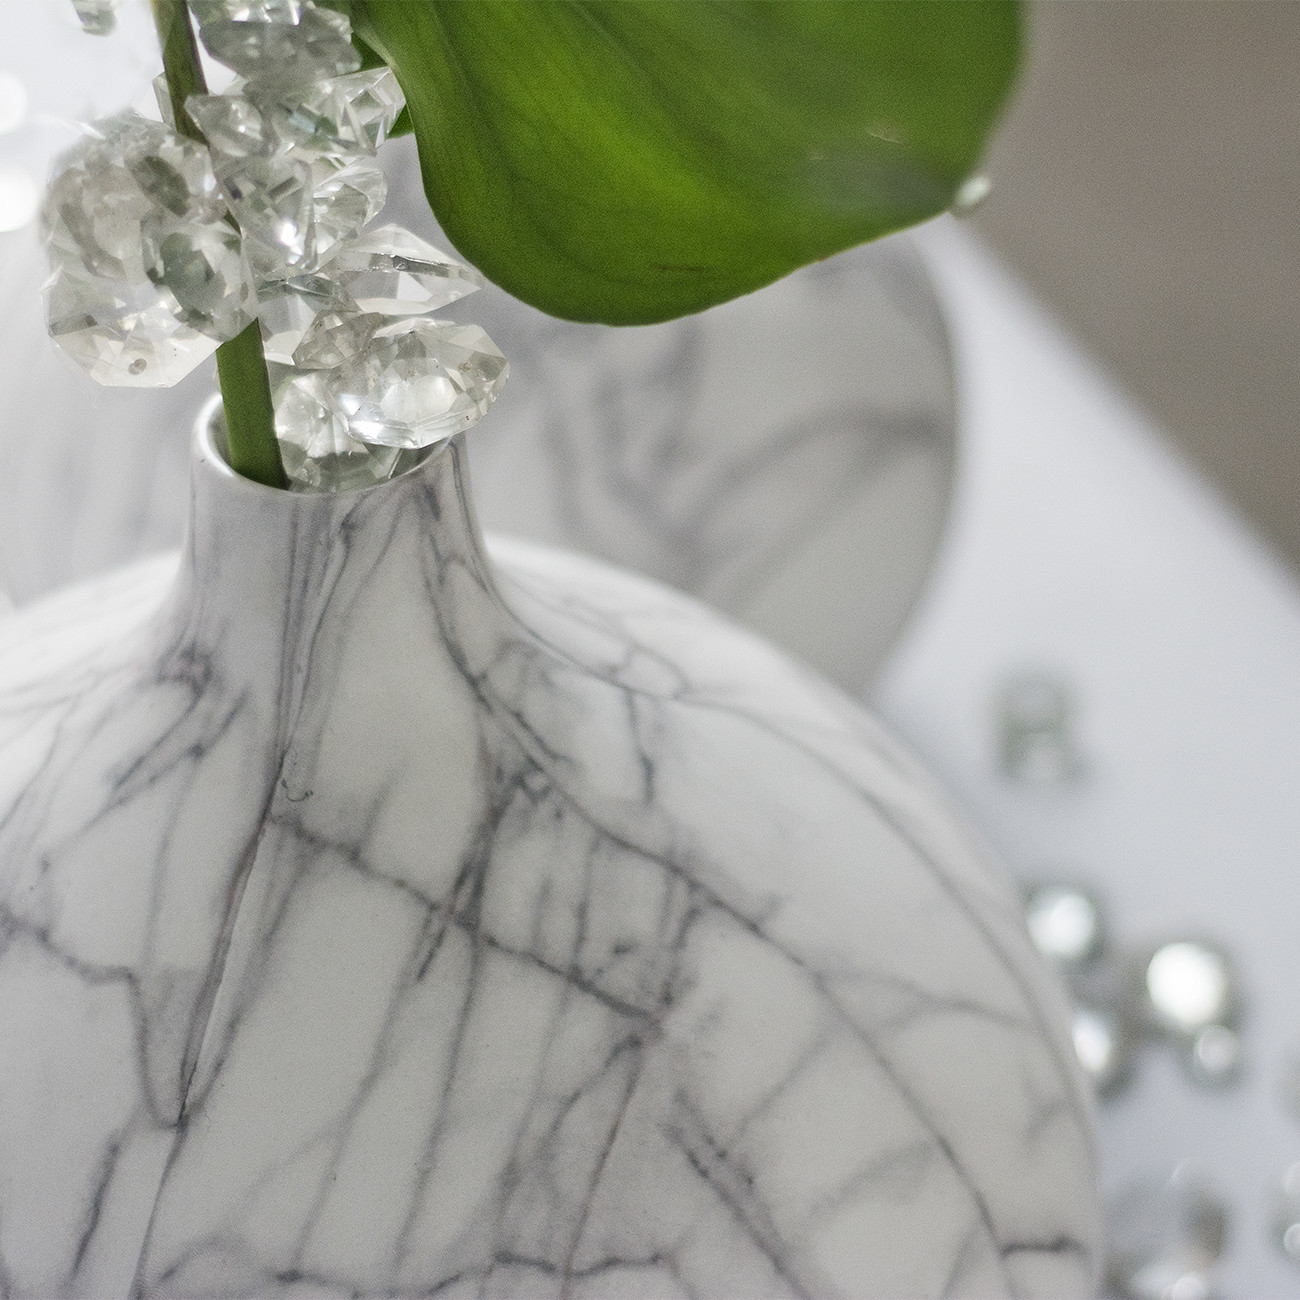 20 Stylish Giant Clear Glass Vase